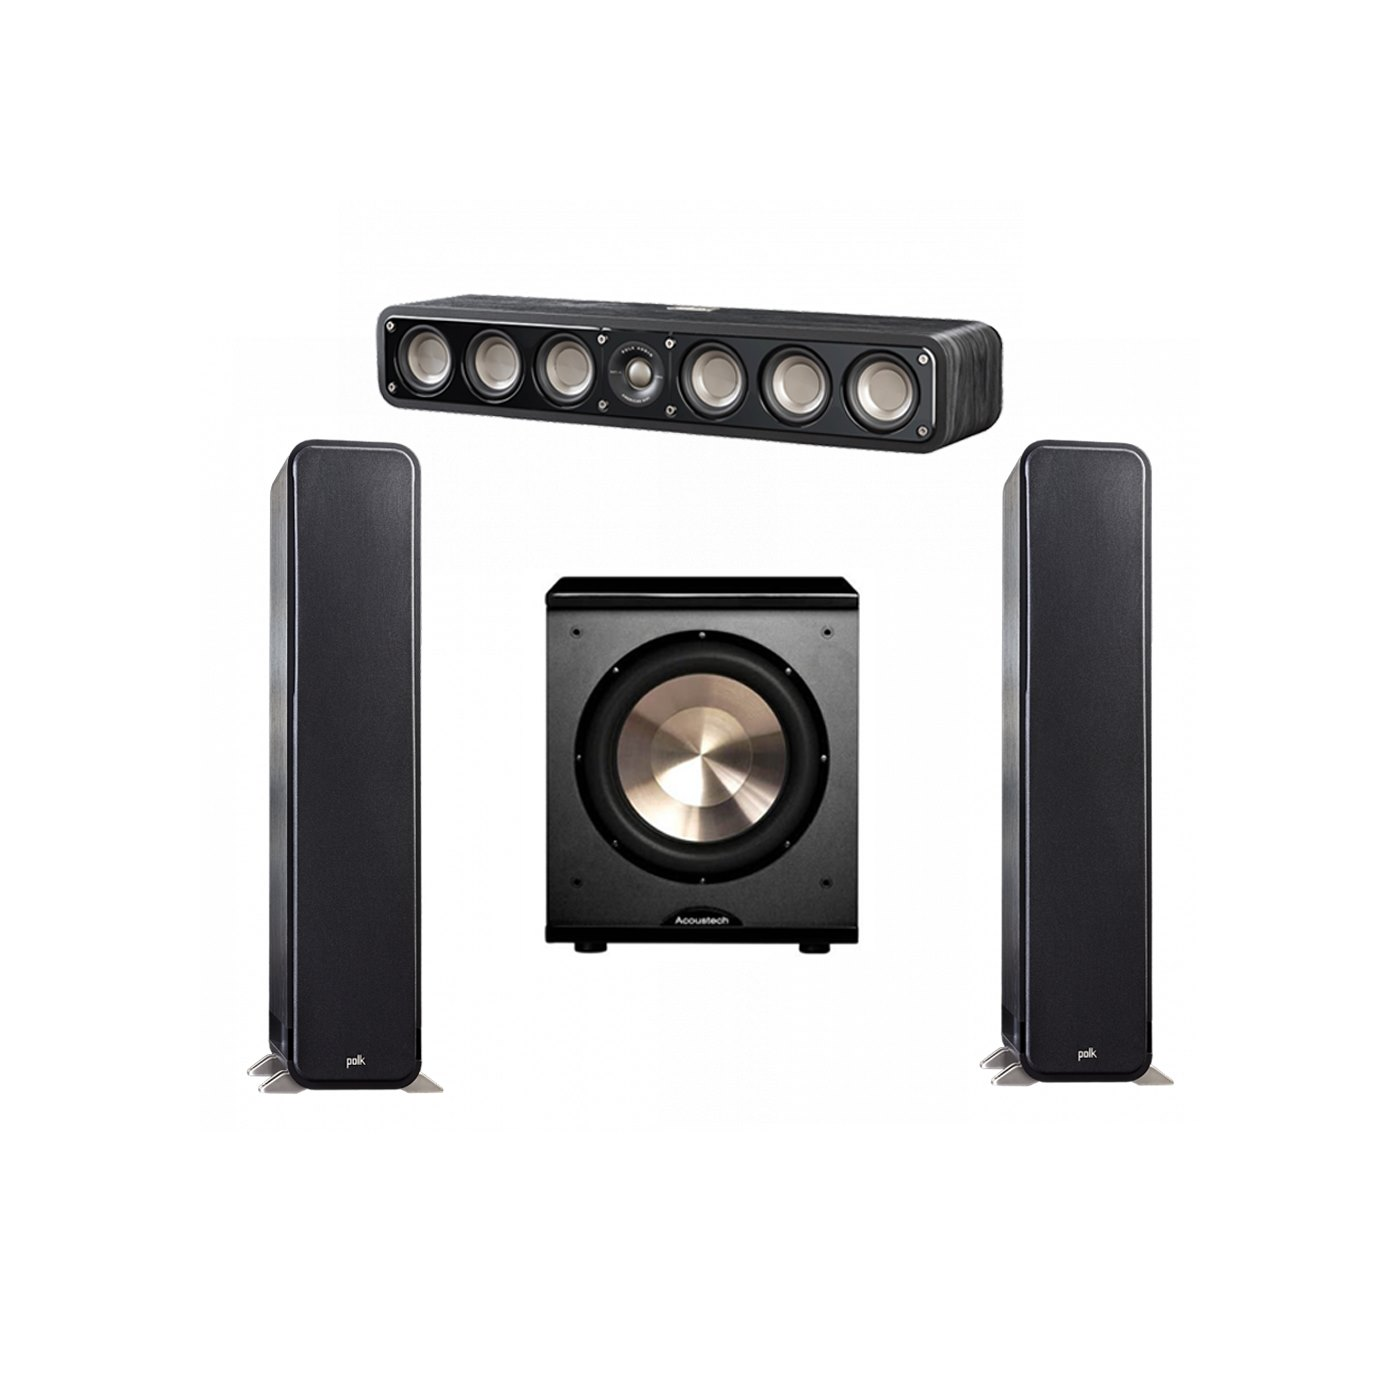 Polk Audio Signature 3.1 System with 2 S55 Tower Speaker, 1 Polk S35 Center Speaker, 1 BIC/Acoustech Platinum Series PL-200 Subwoofer